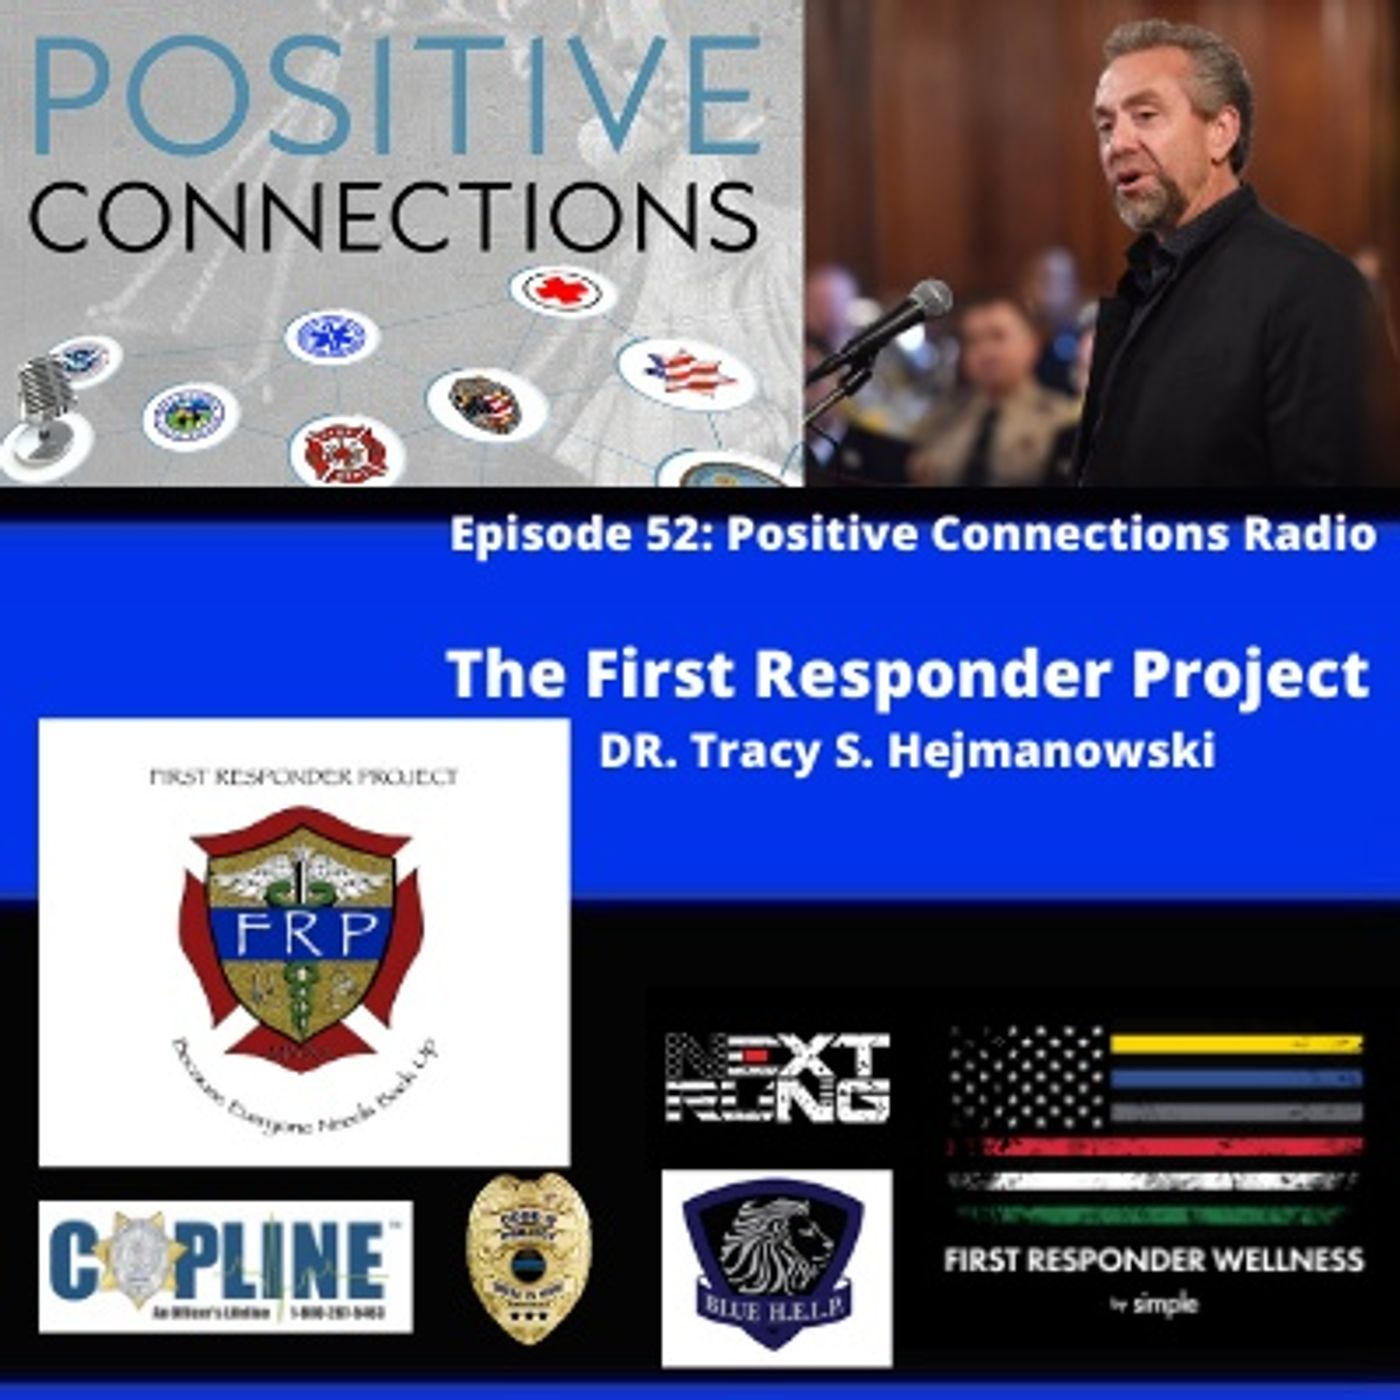 The First Responder Project: Dr. Tracy S. Hejmanowski